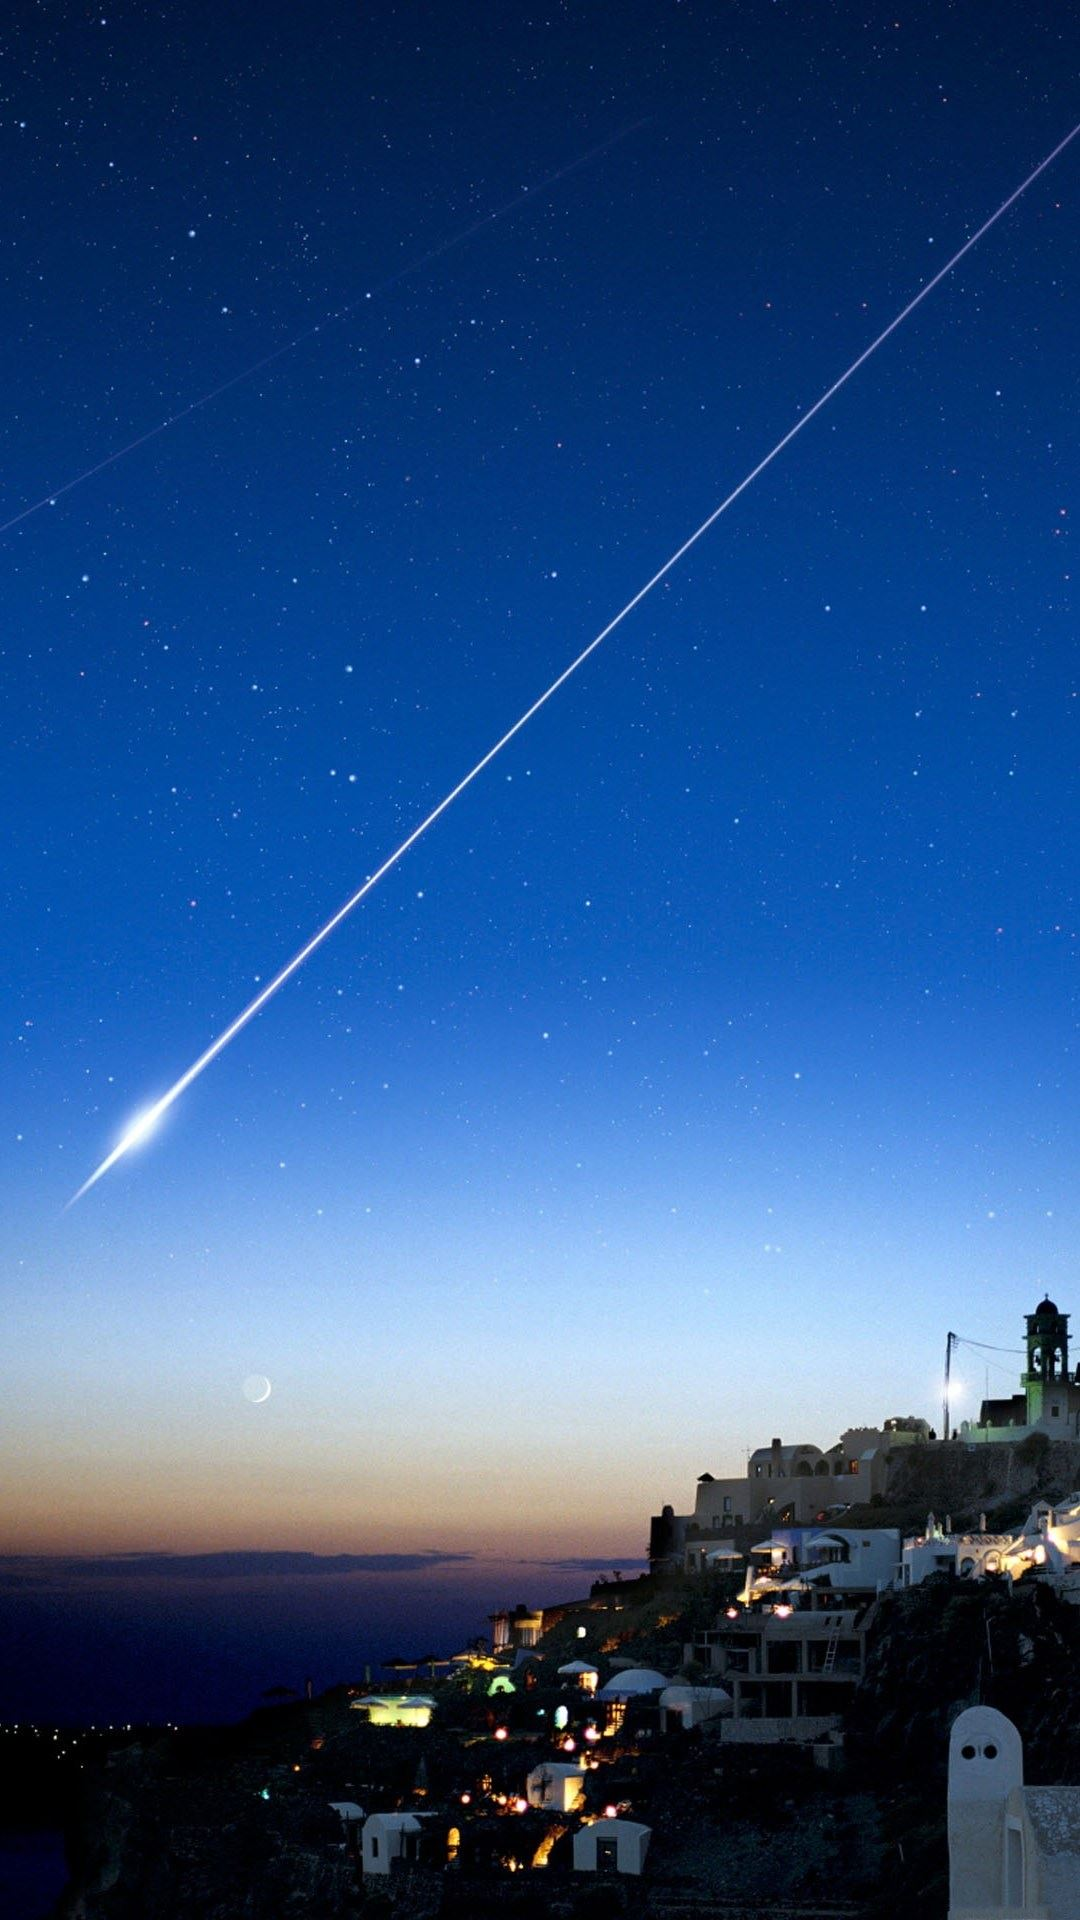 Shooting Star Over Cliff City iPhone 6 Wallpaper Download iPhone 1080x1920